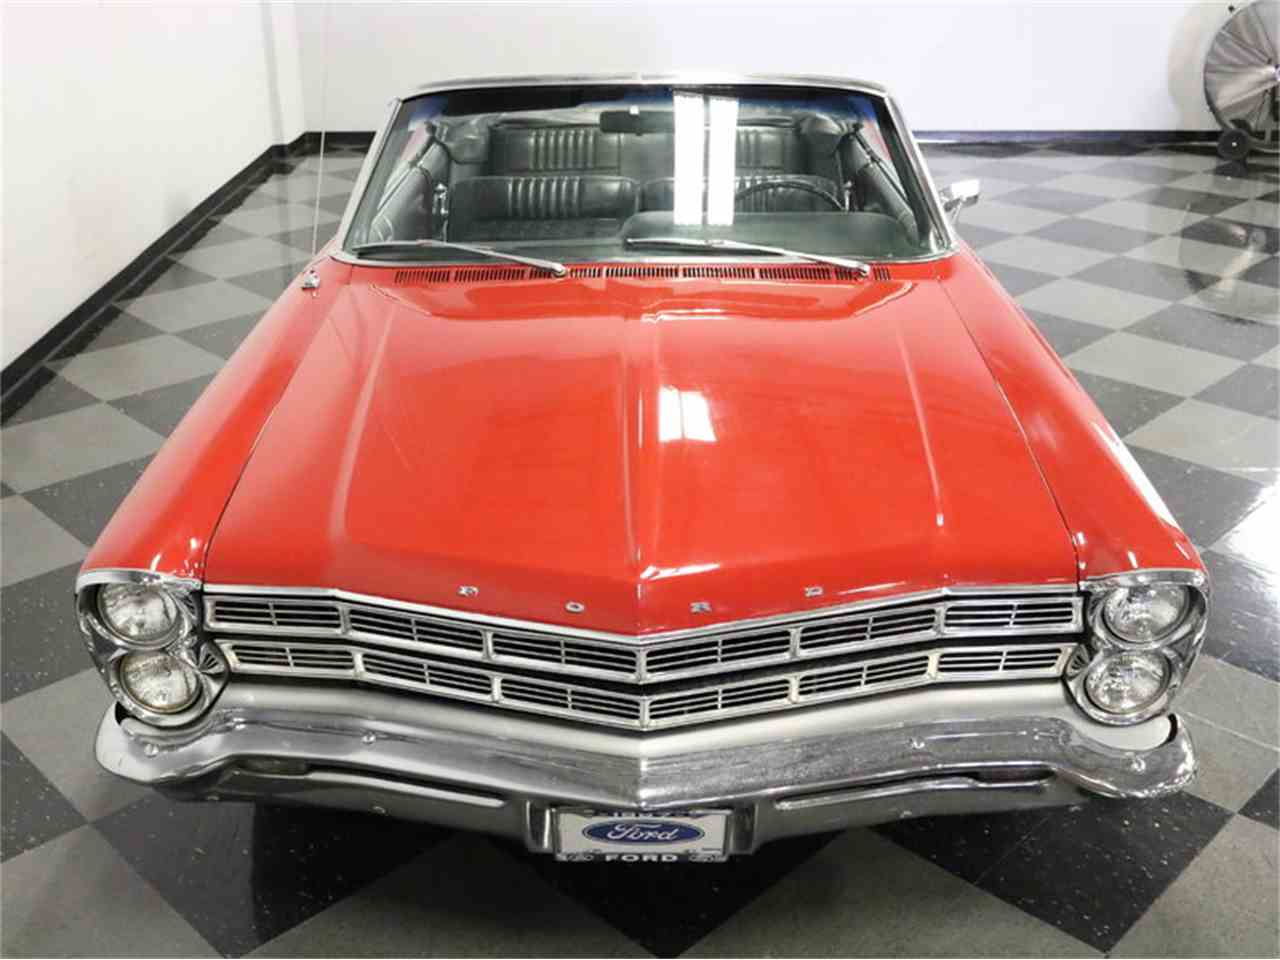 1967 Ford Galaxie 500 for Sale | ClassicCars.com | CC-1003468